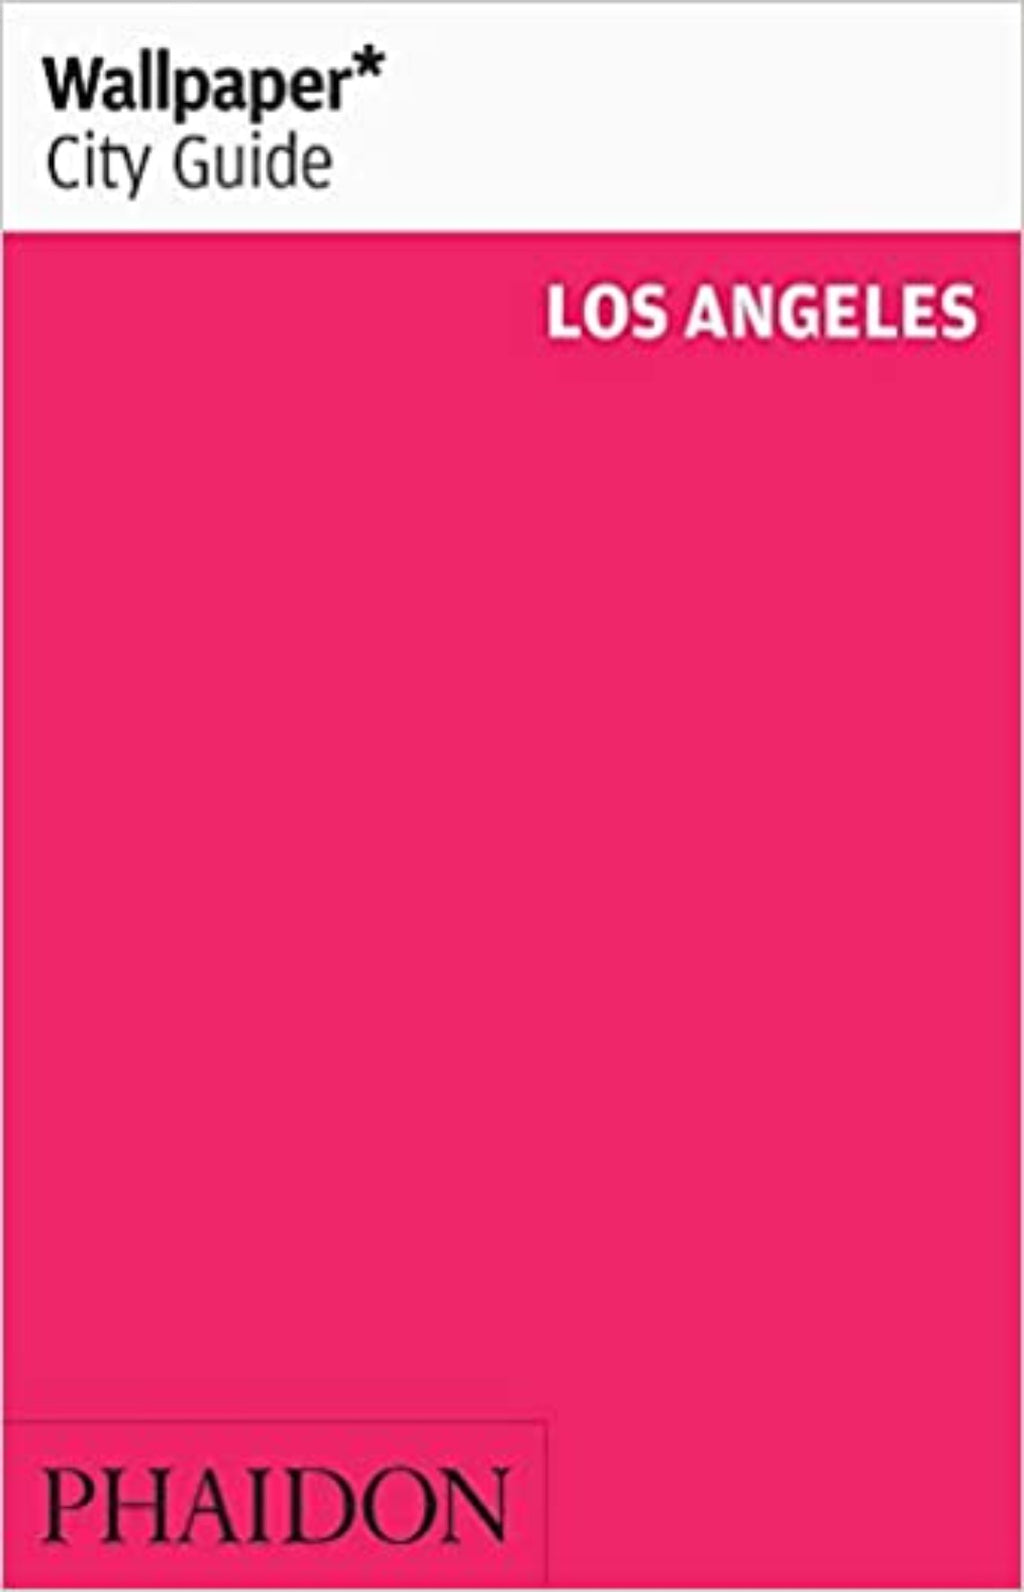 Wallpaper* City Guide - Los Angeles